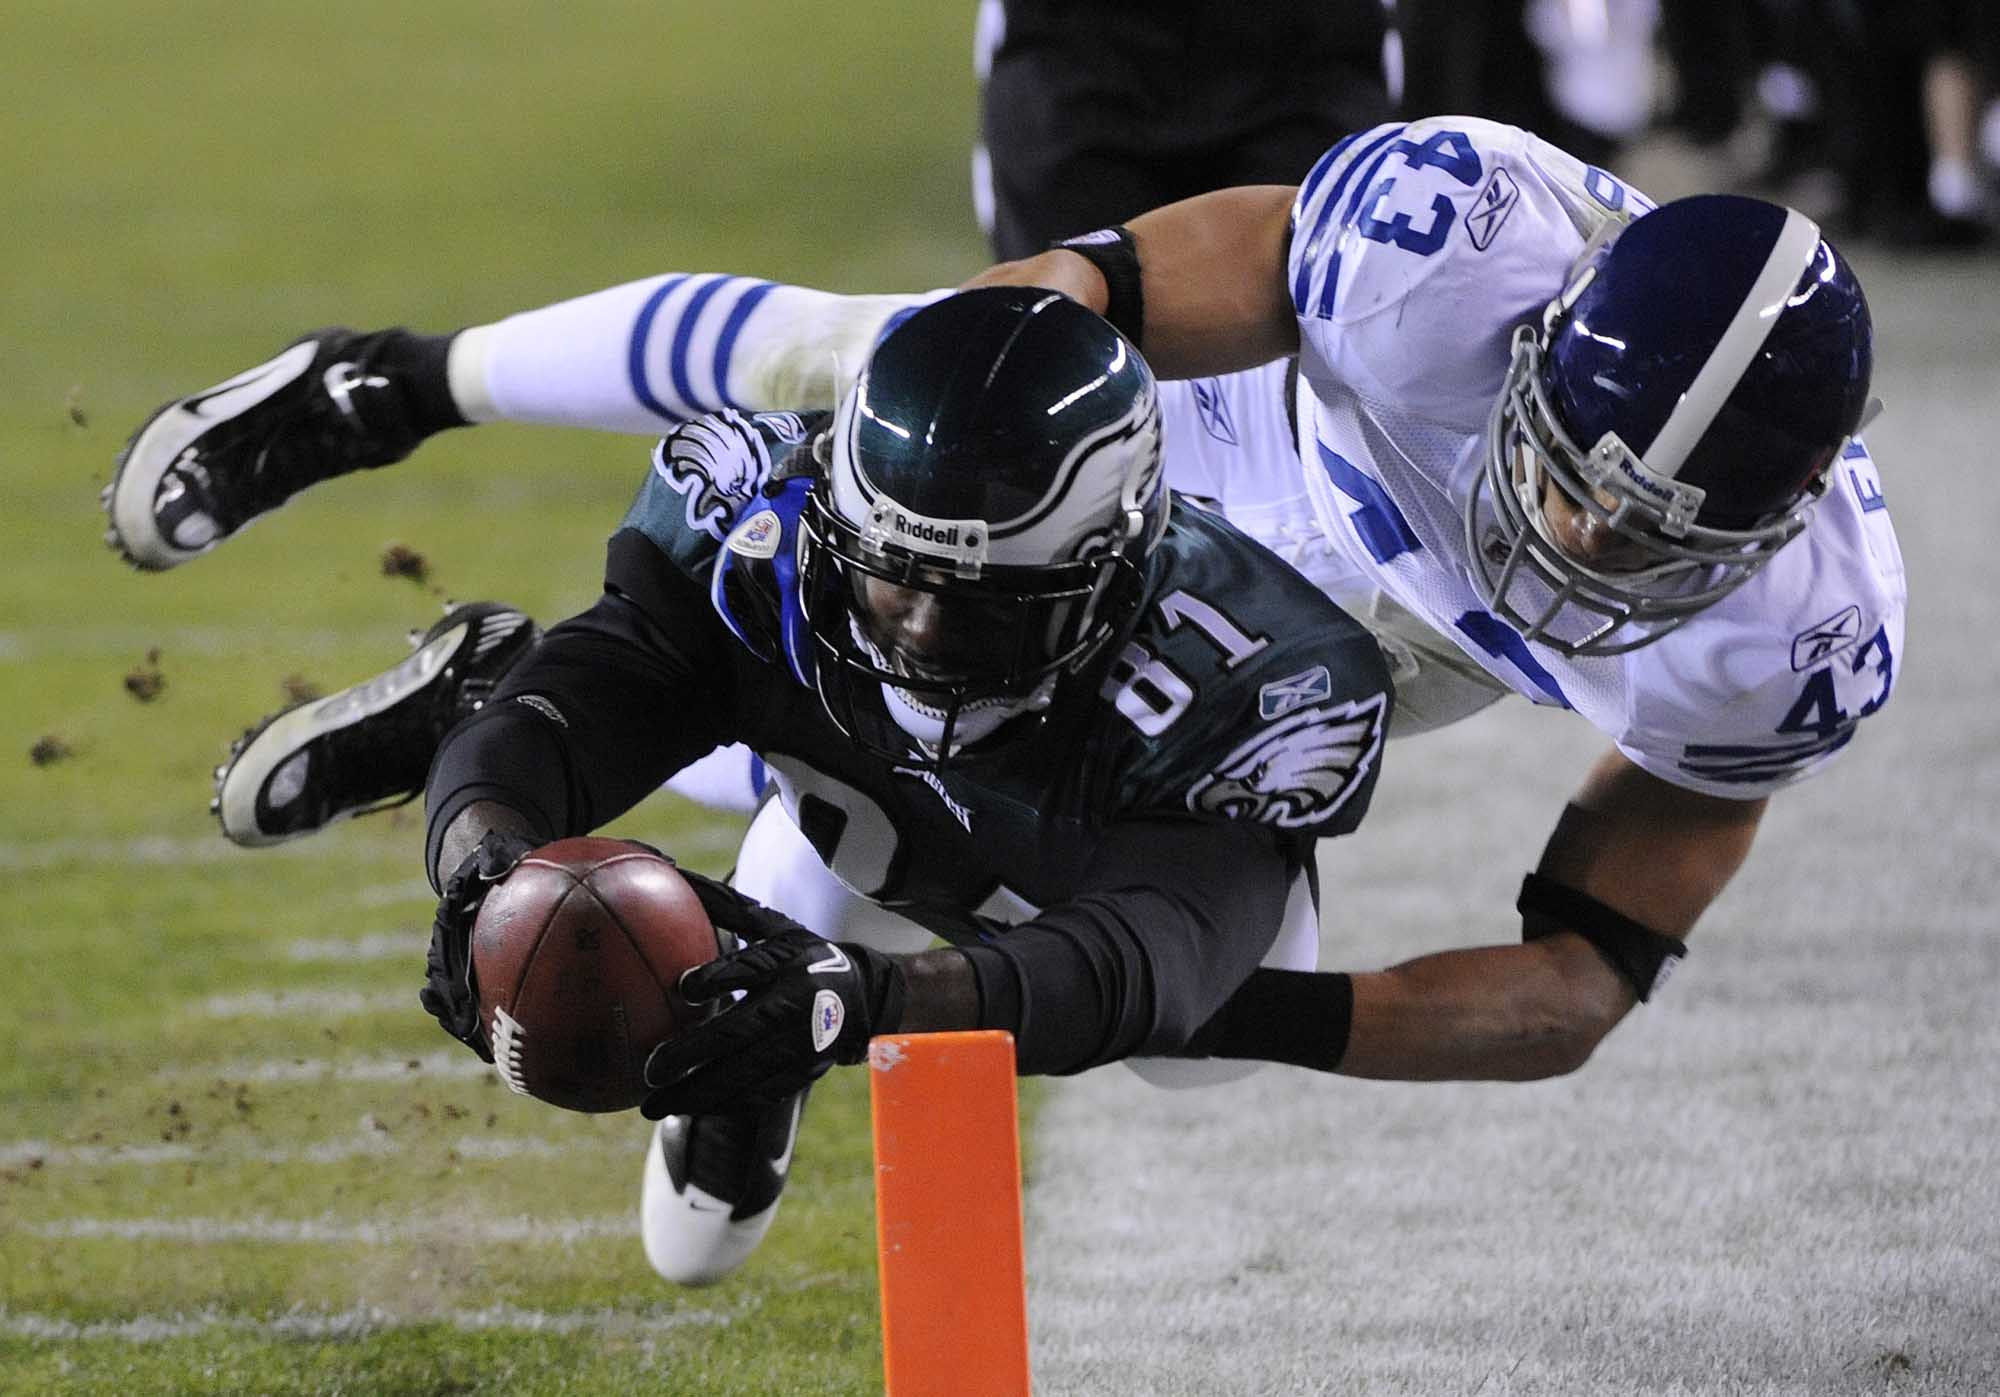 Eagles wide receiver Jason Avant is tackled a yard short of he goal line by Indianapolis Colts defensive back Aaron Francisco during the fourth quarter.